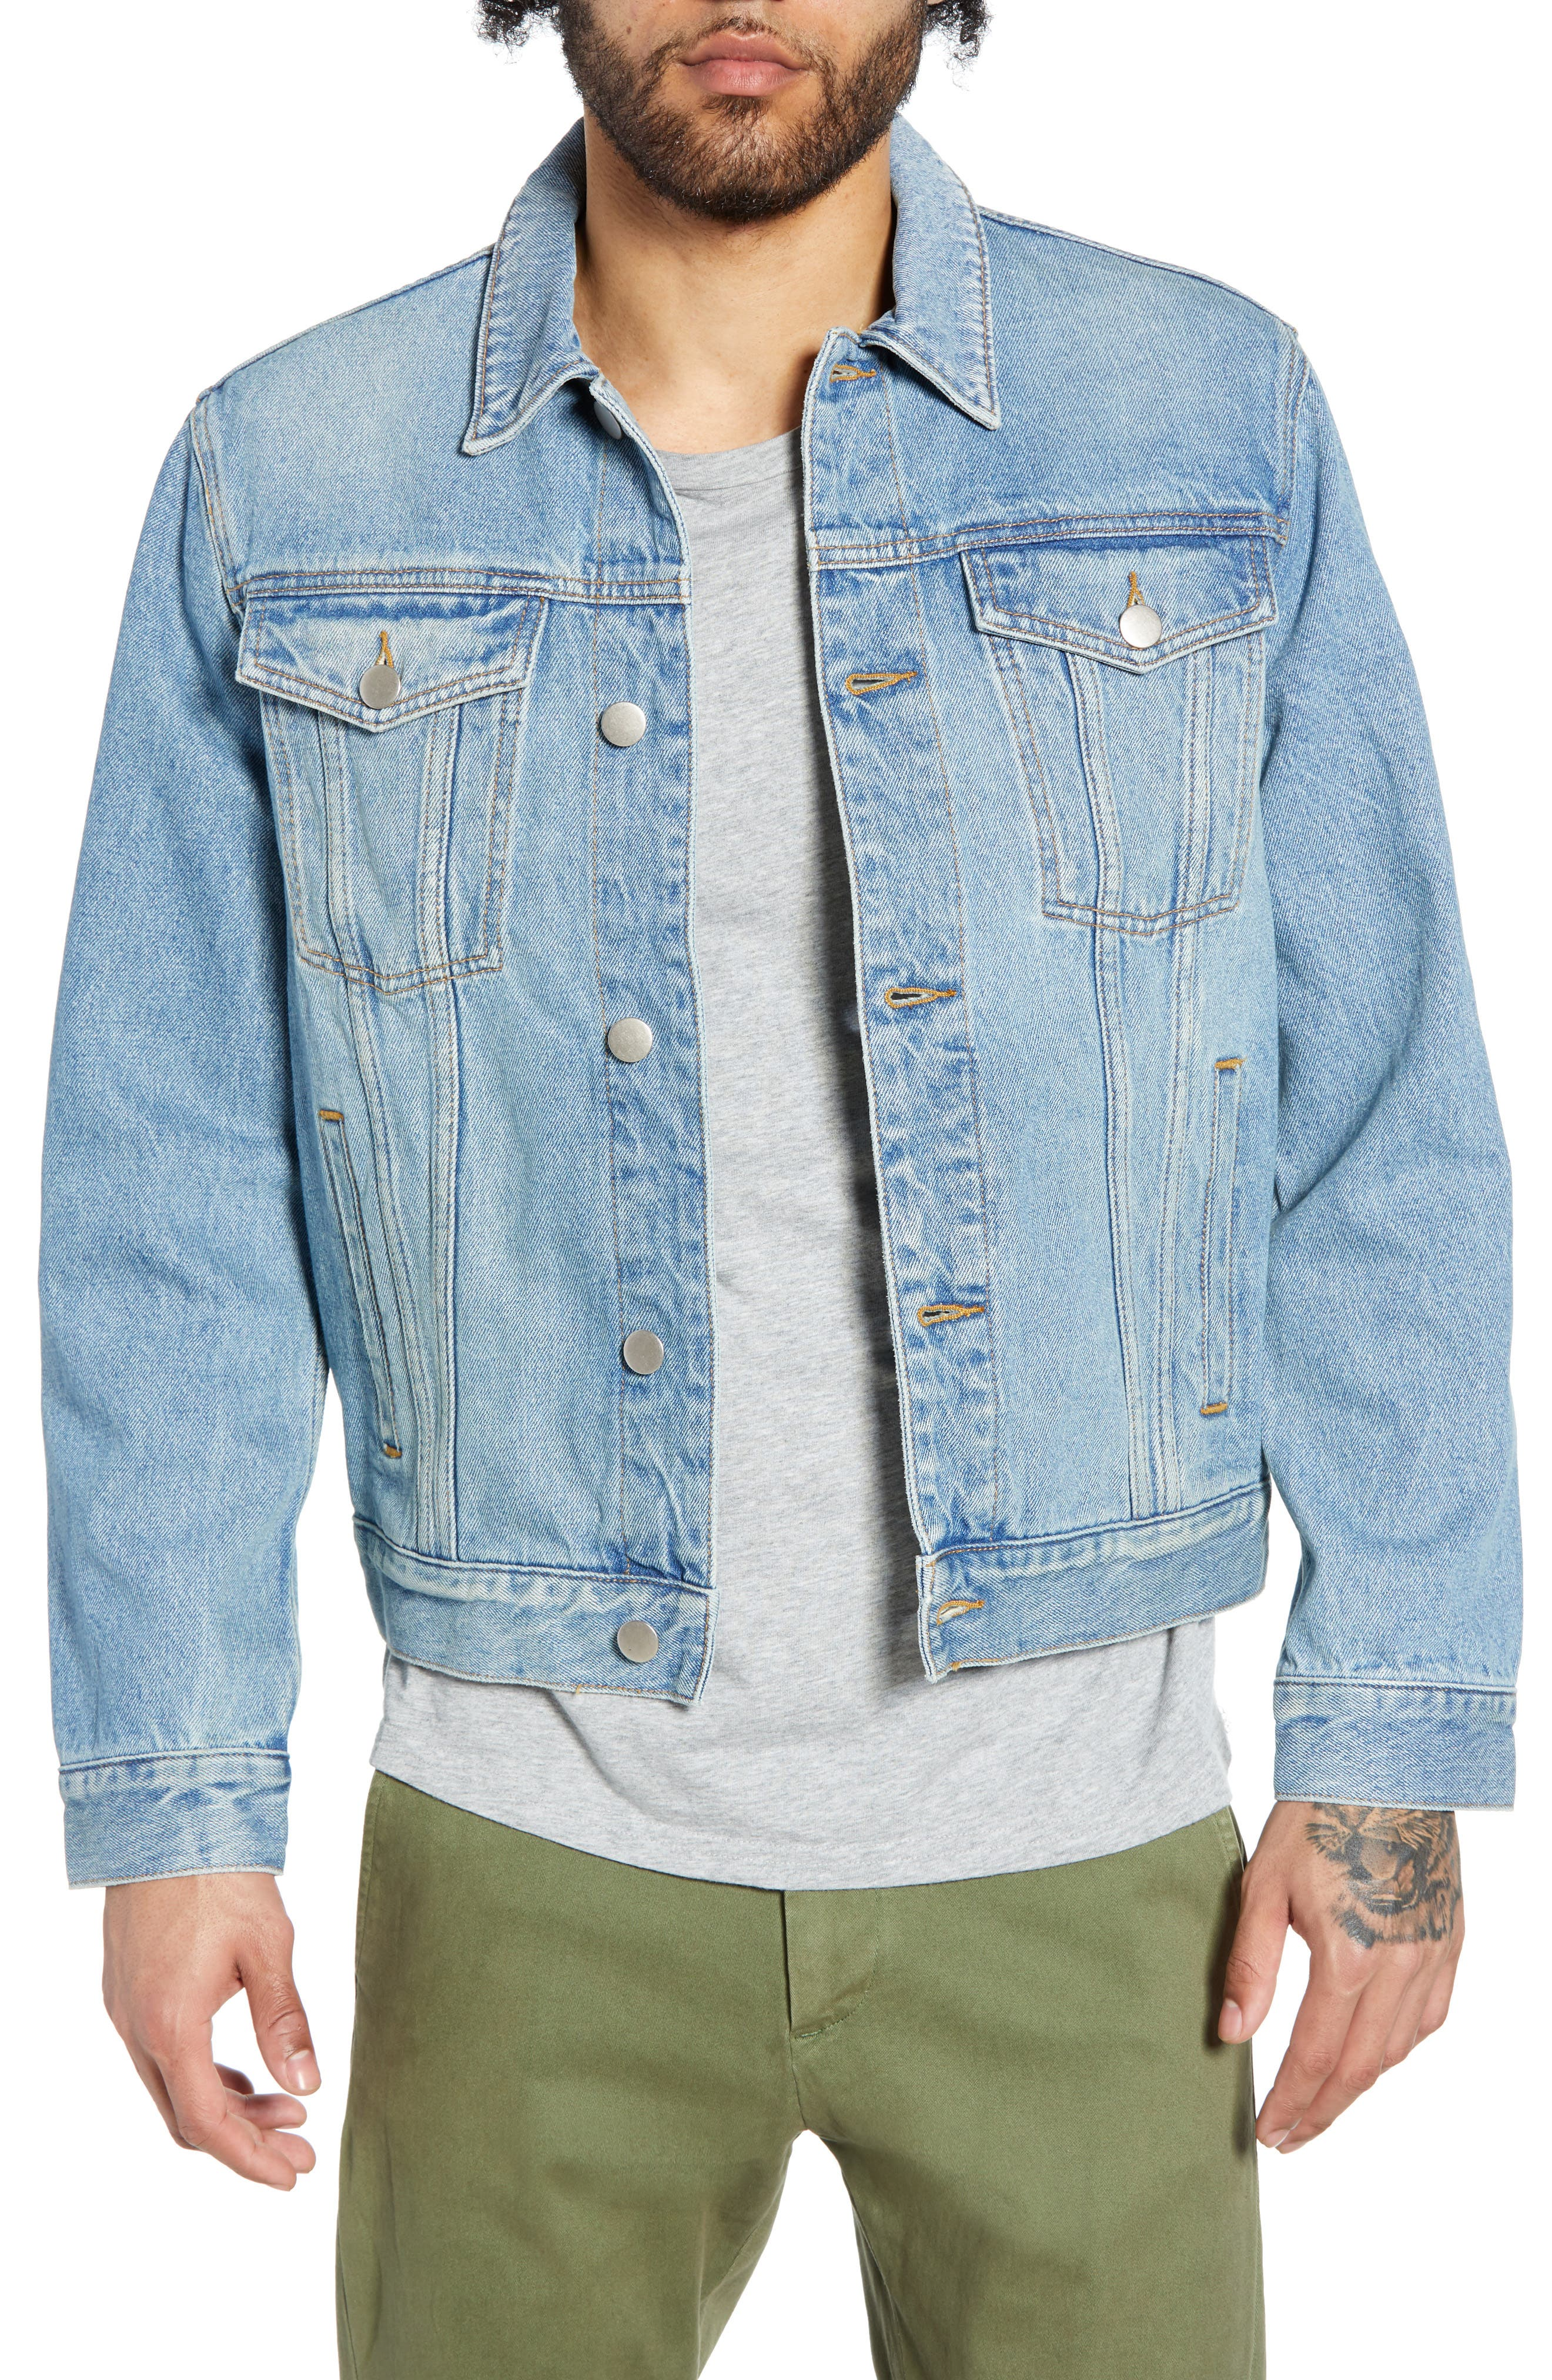 THE RAIL Denim Jacket, Main, color, BLUE TREK WASH